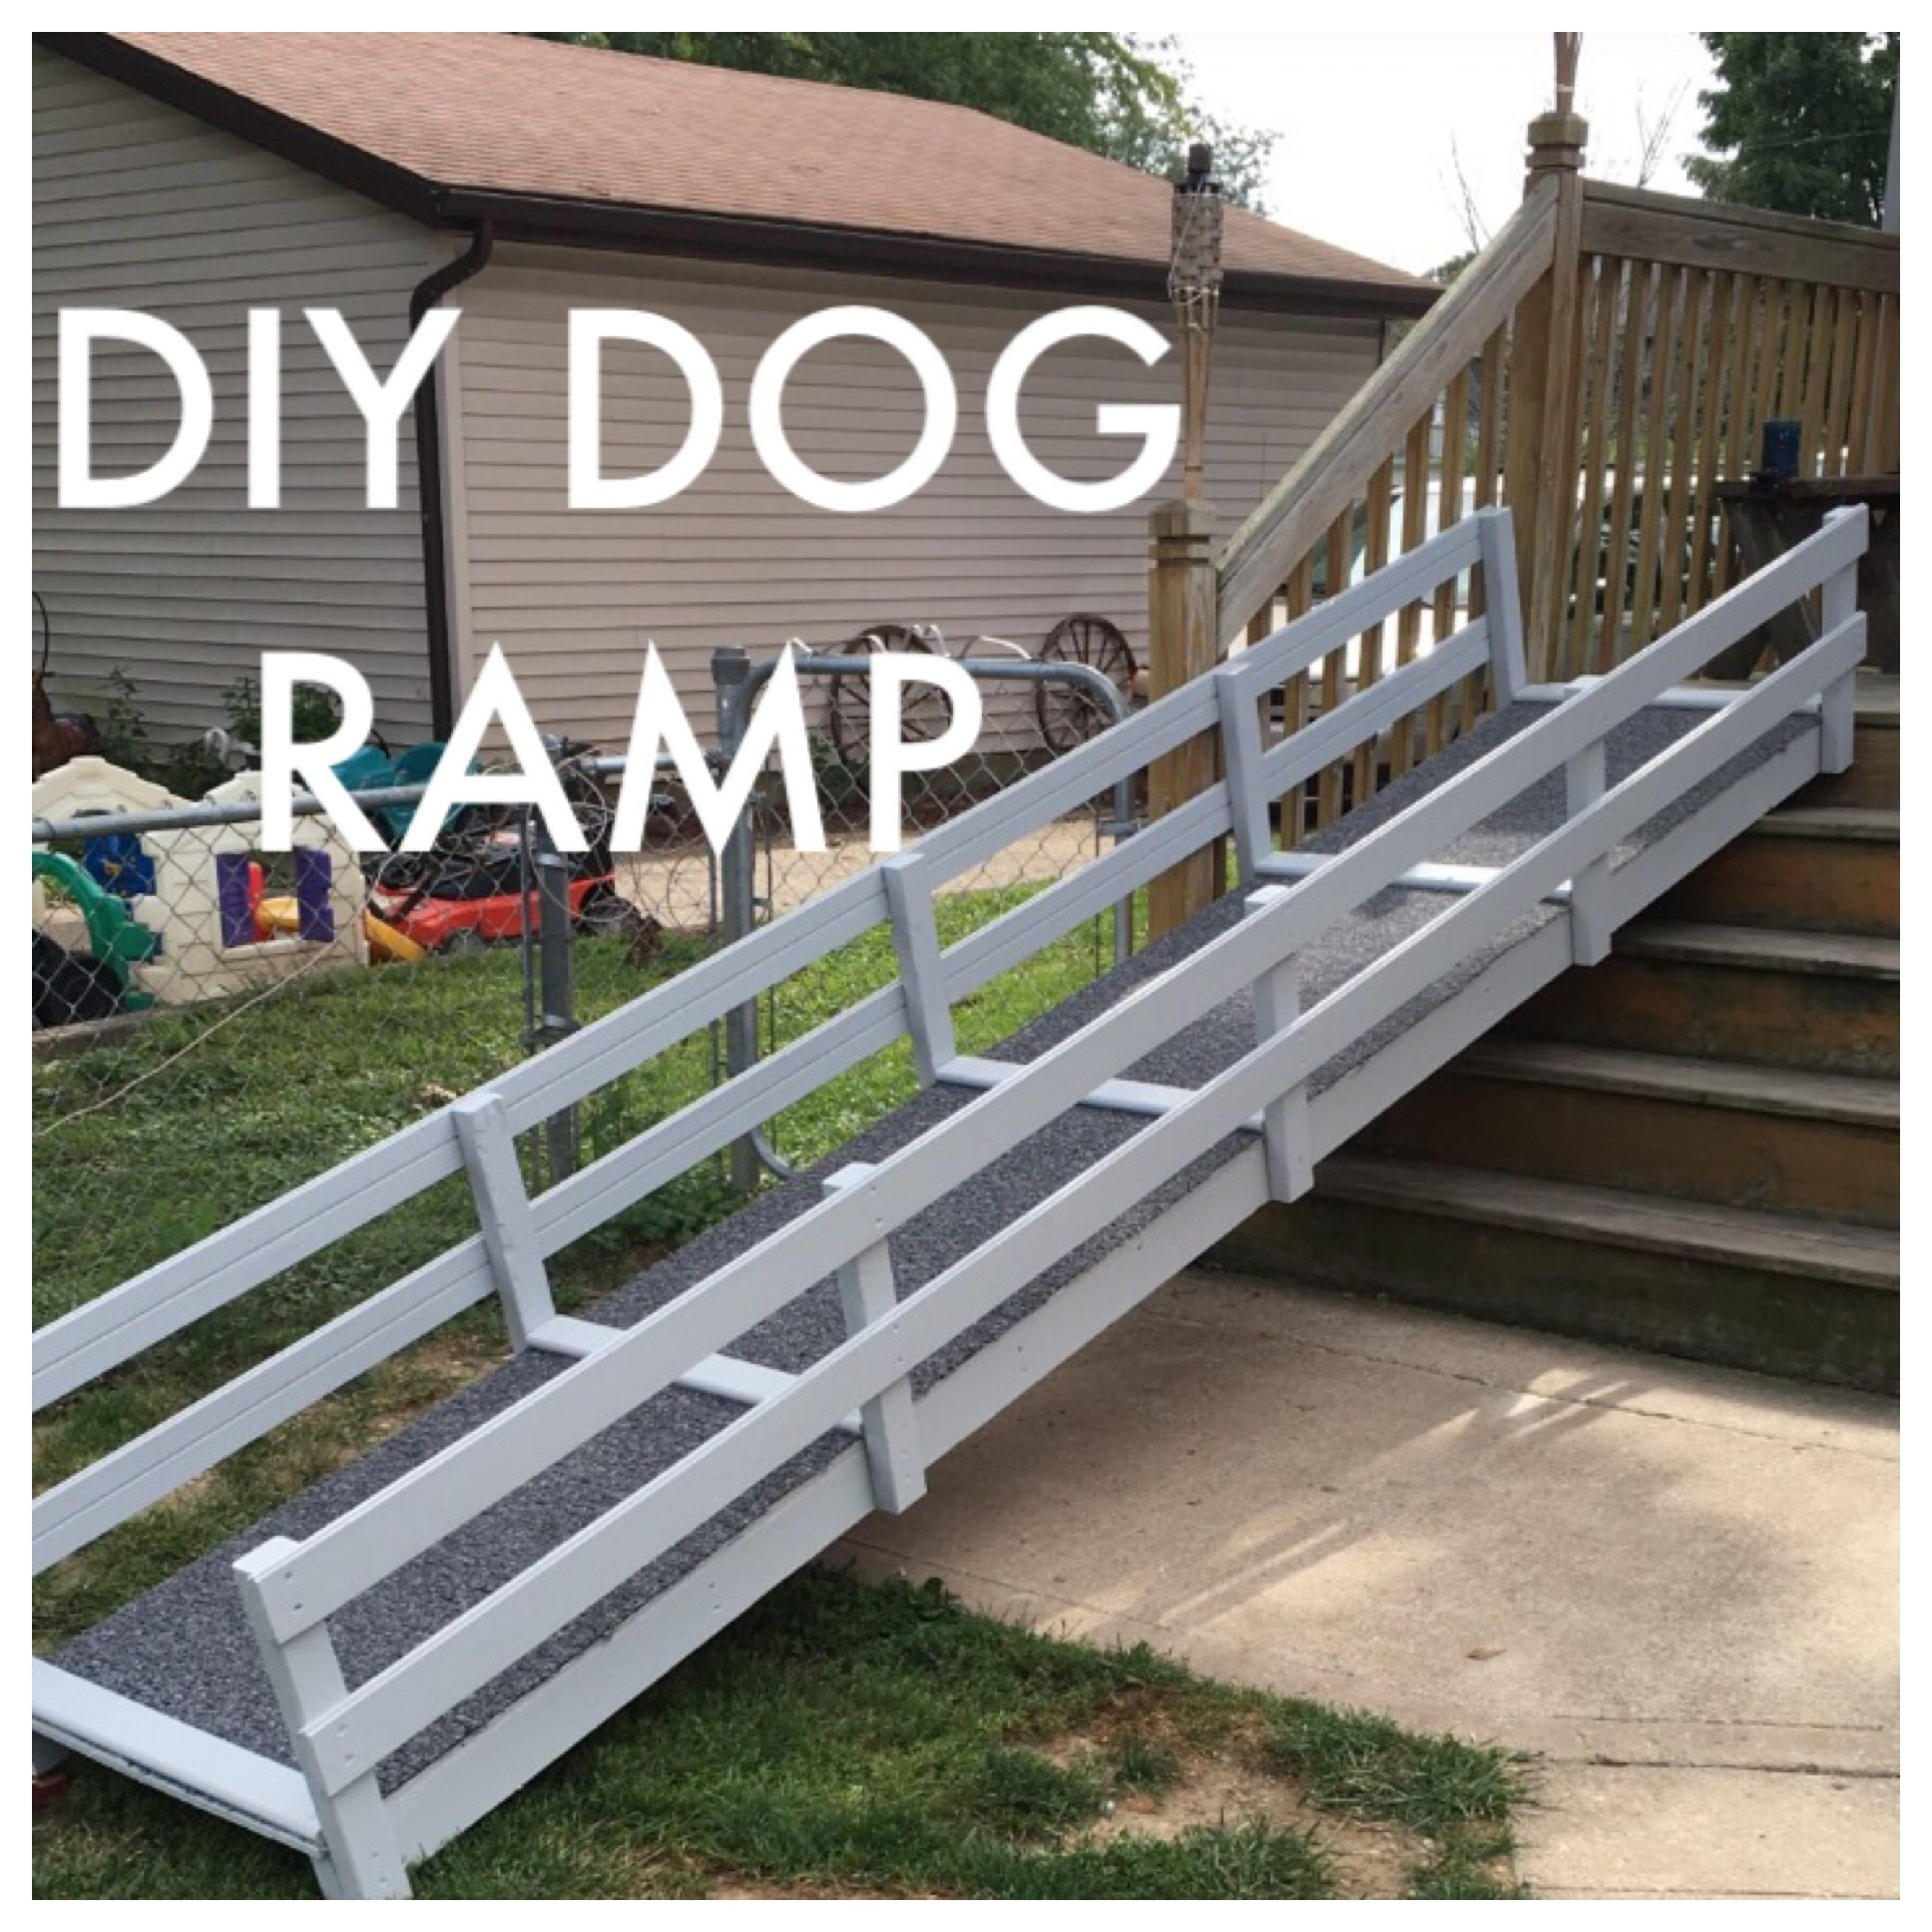 Bon DIY Dog Ramp Over Stairs Dog Ramp Diy Dog Ramp